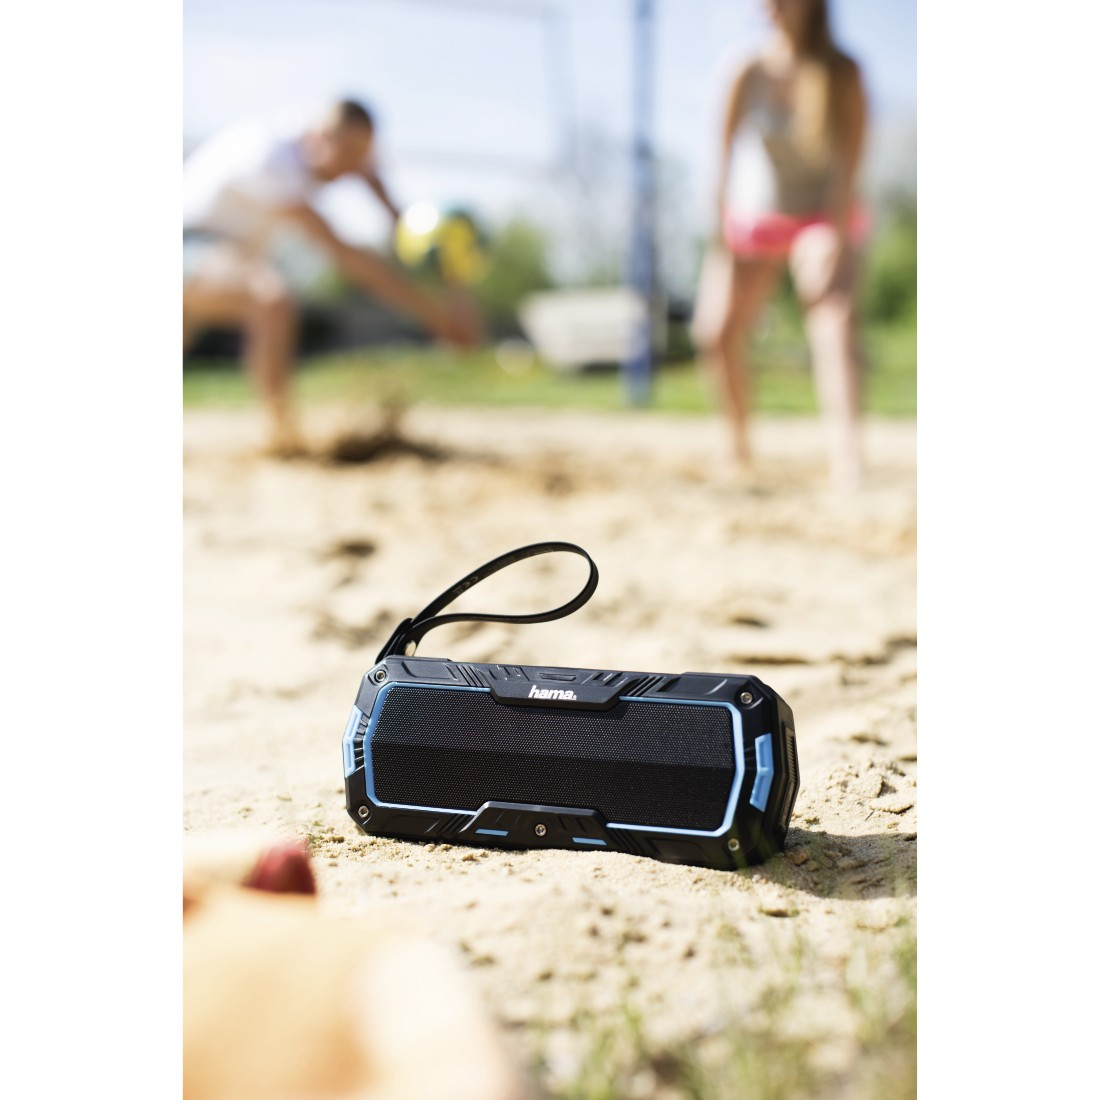 awx High-Res Appliance - Hama, Rockman-L Mobile Bluetooth Speaker, black/blue